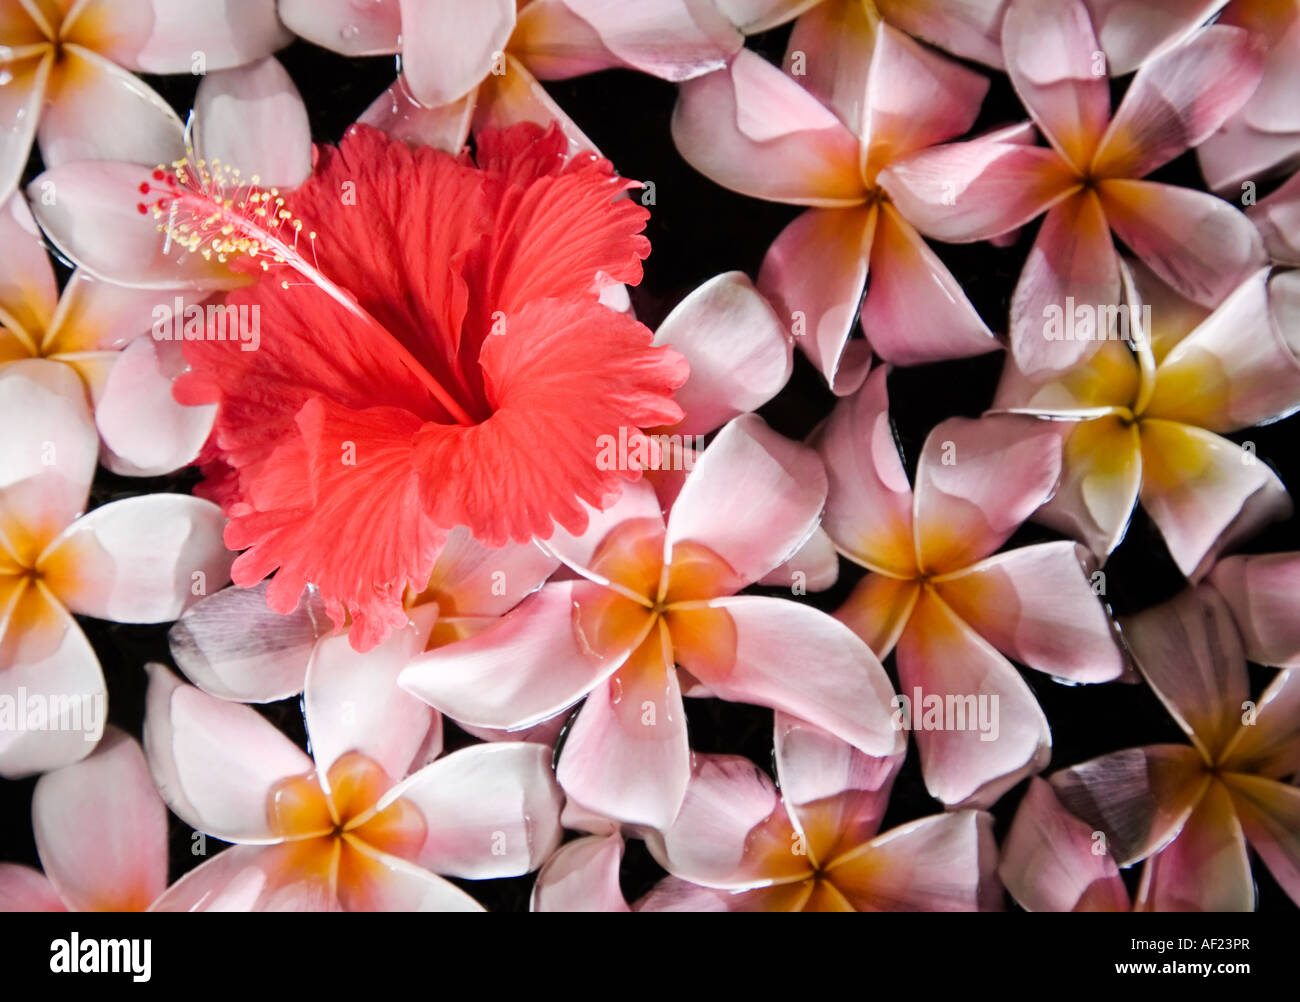 A Red Hibiscus Flower Blooming Amidst A Pink Flower Arrangement In